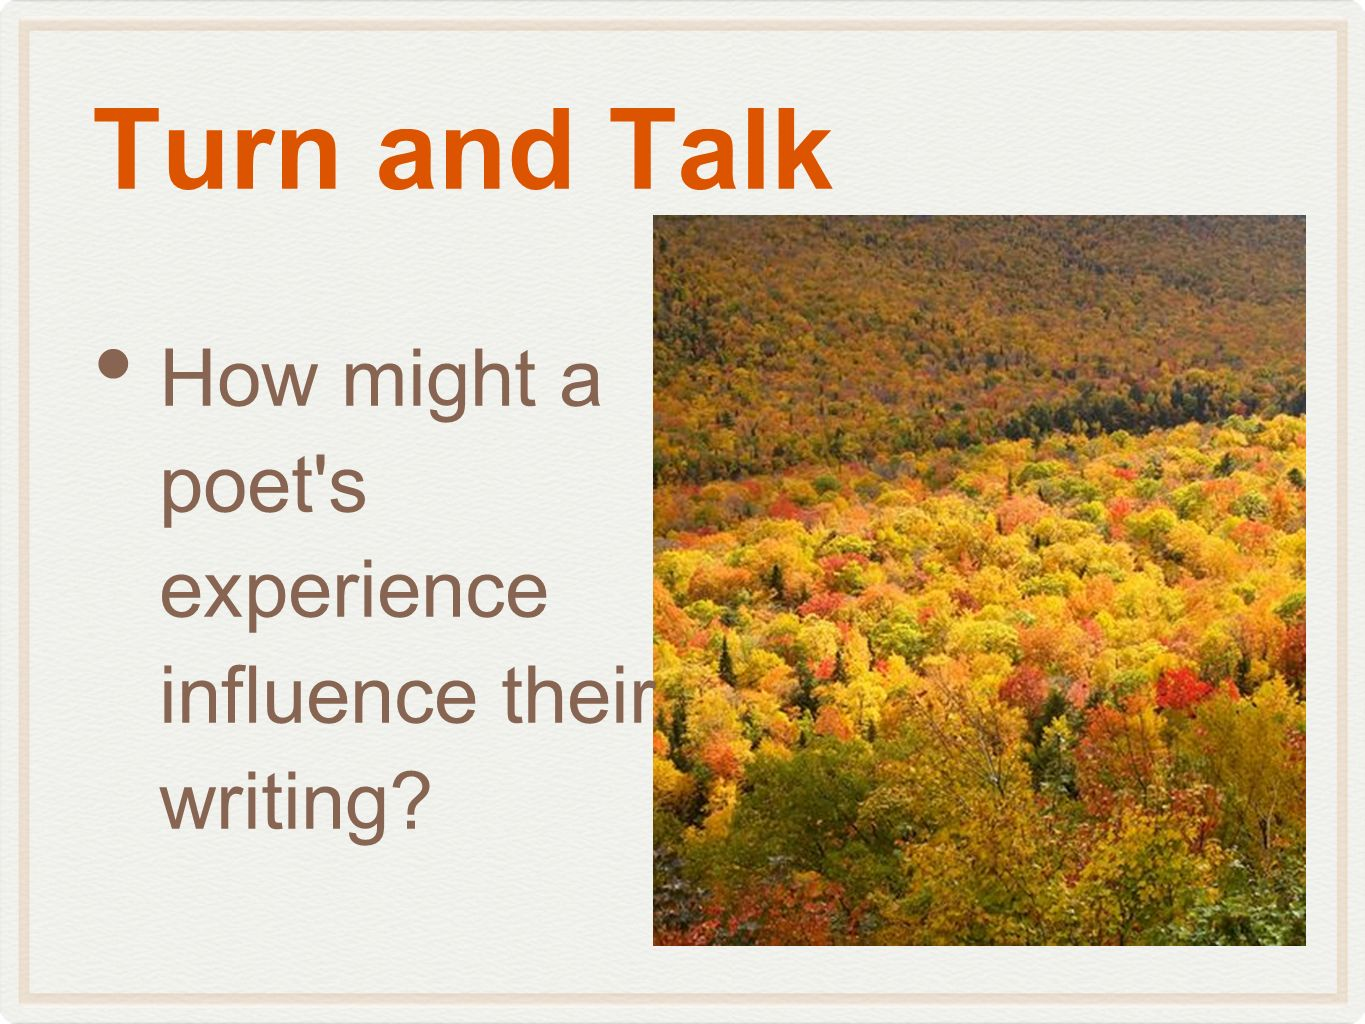 Turn and Talk How might a poet's experience influence their writing?